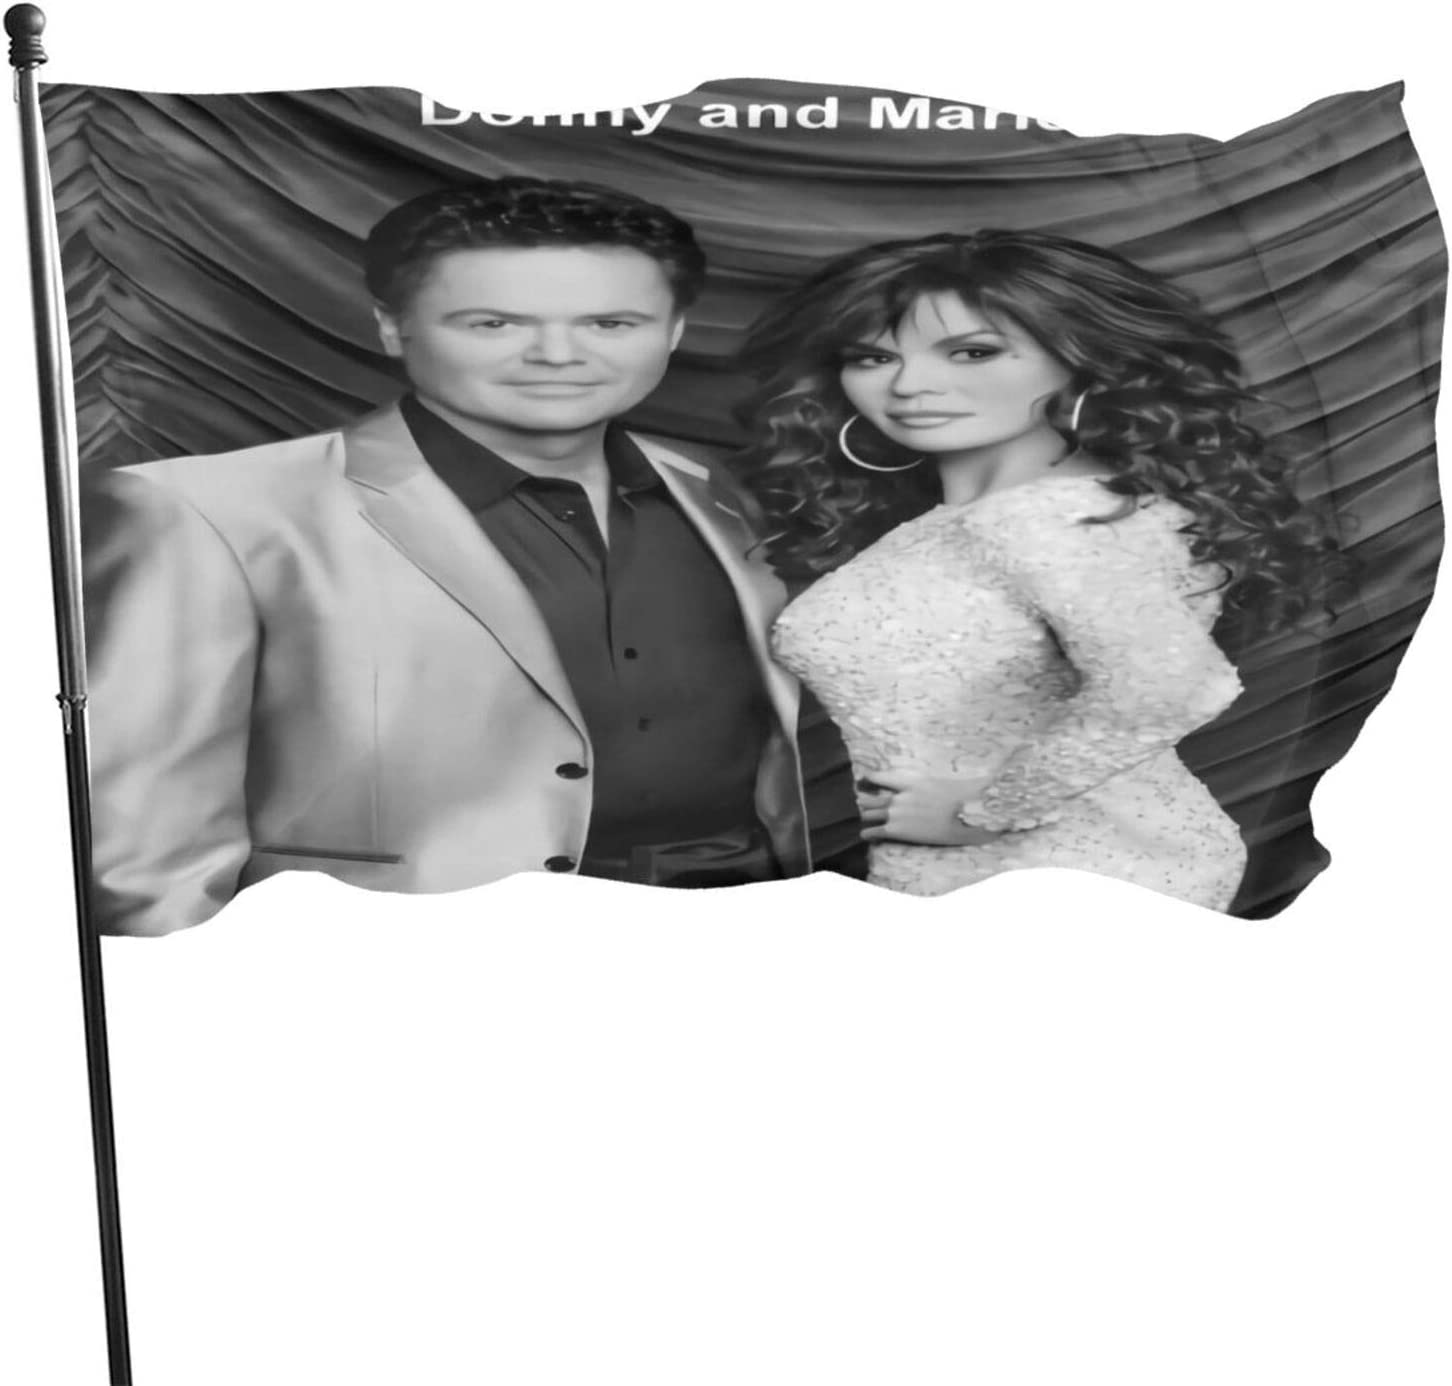 Alsdhsagd56 Unisex Donny and Marie Osmond Poster 3x5 Feet Flag One Size